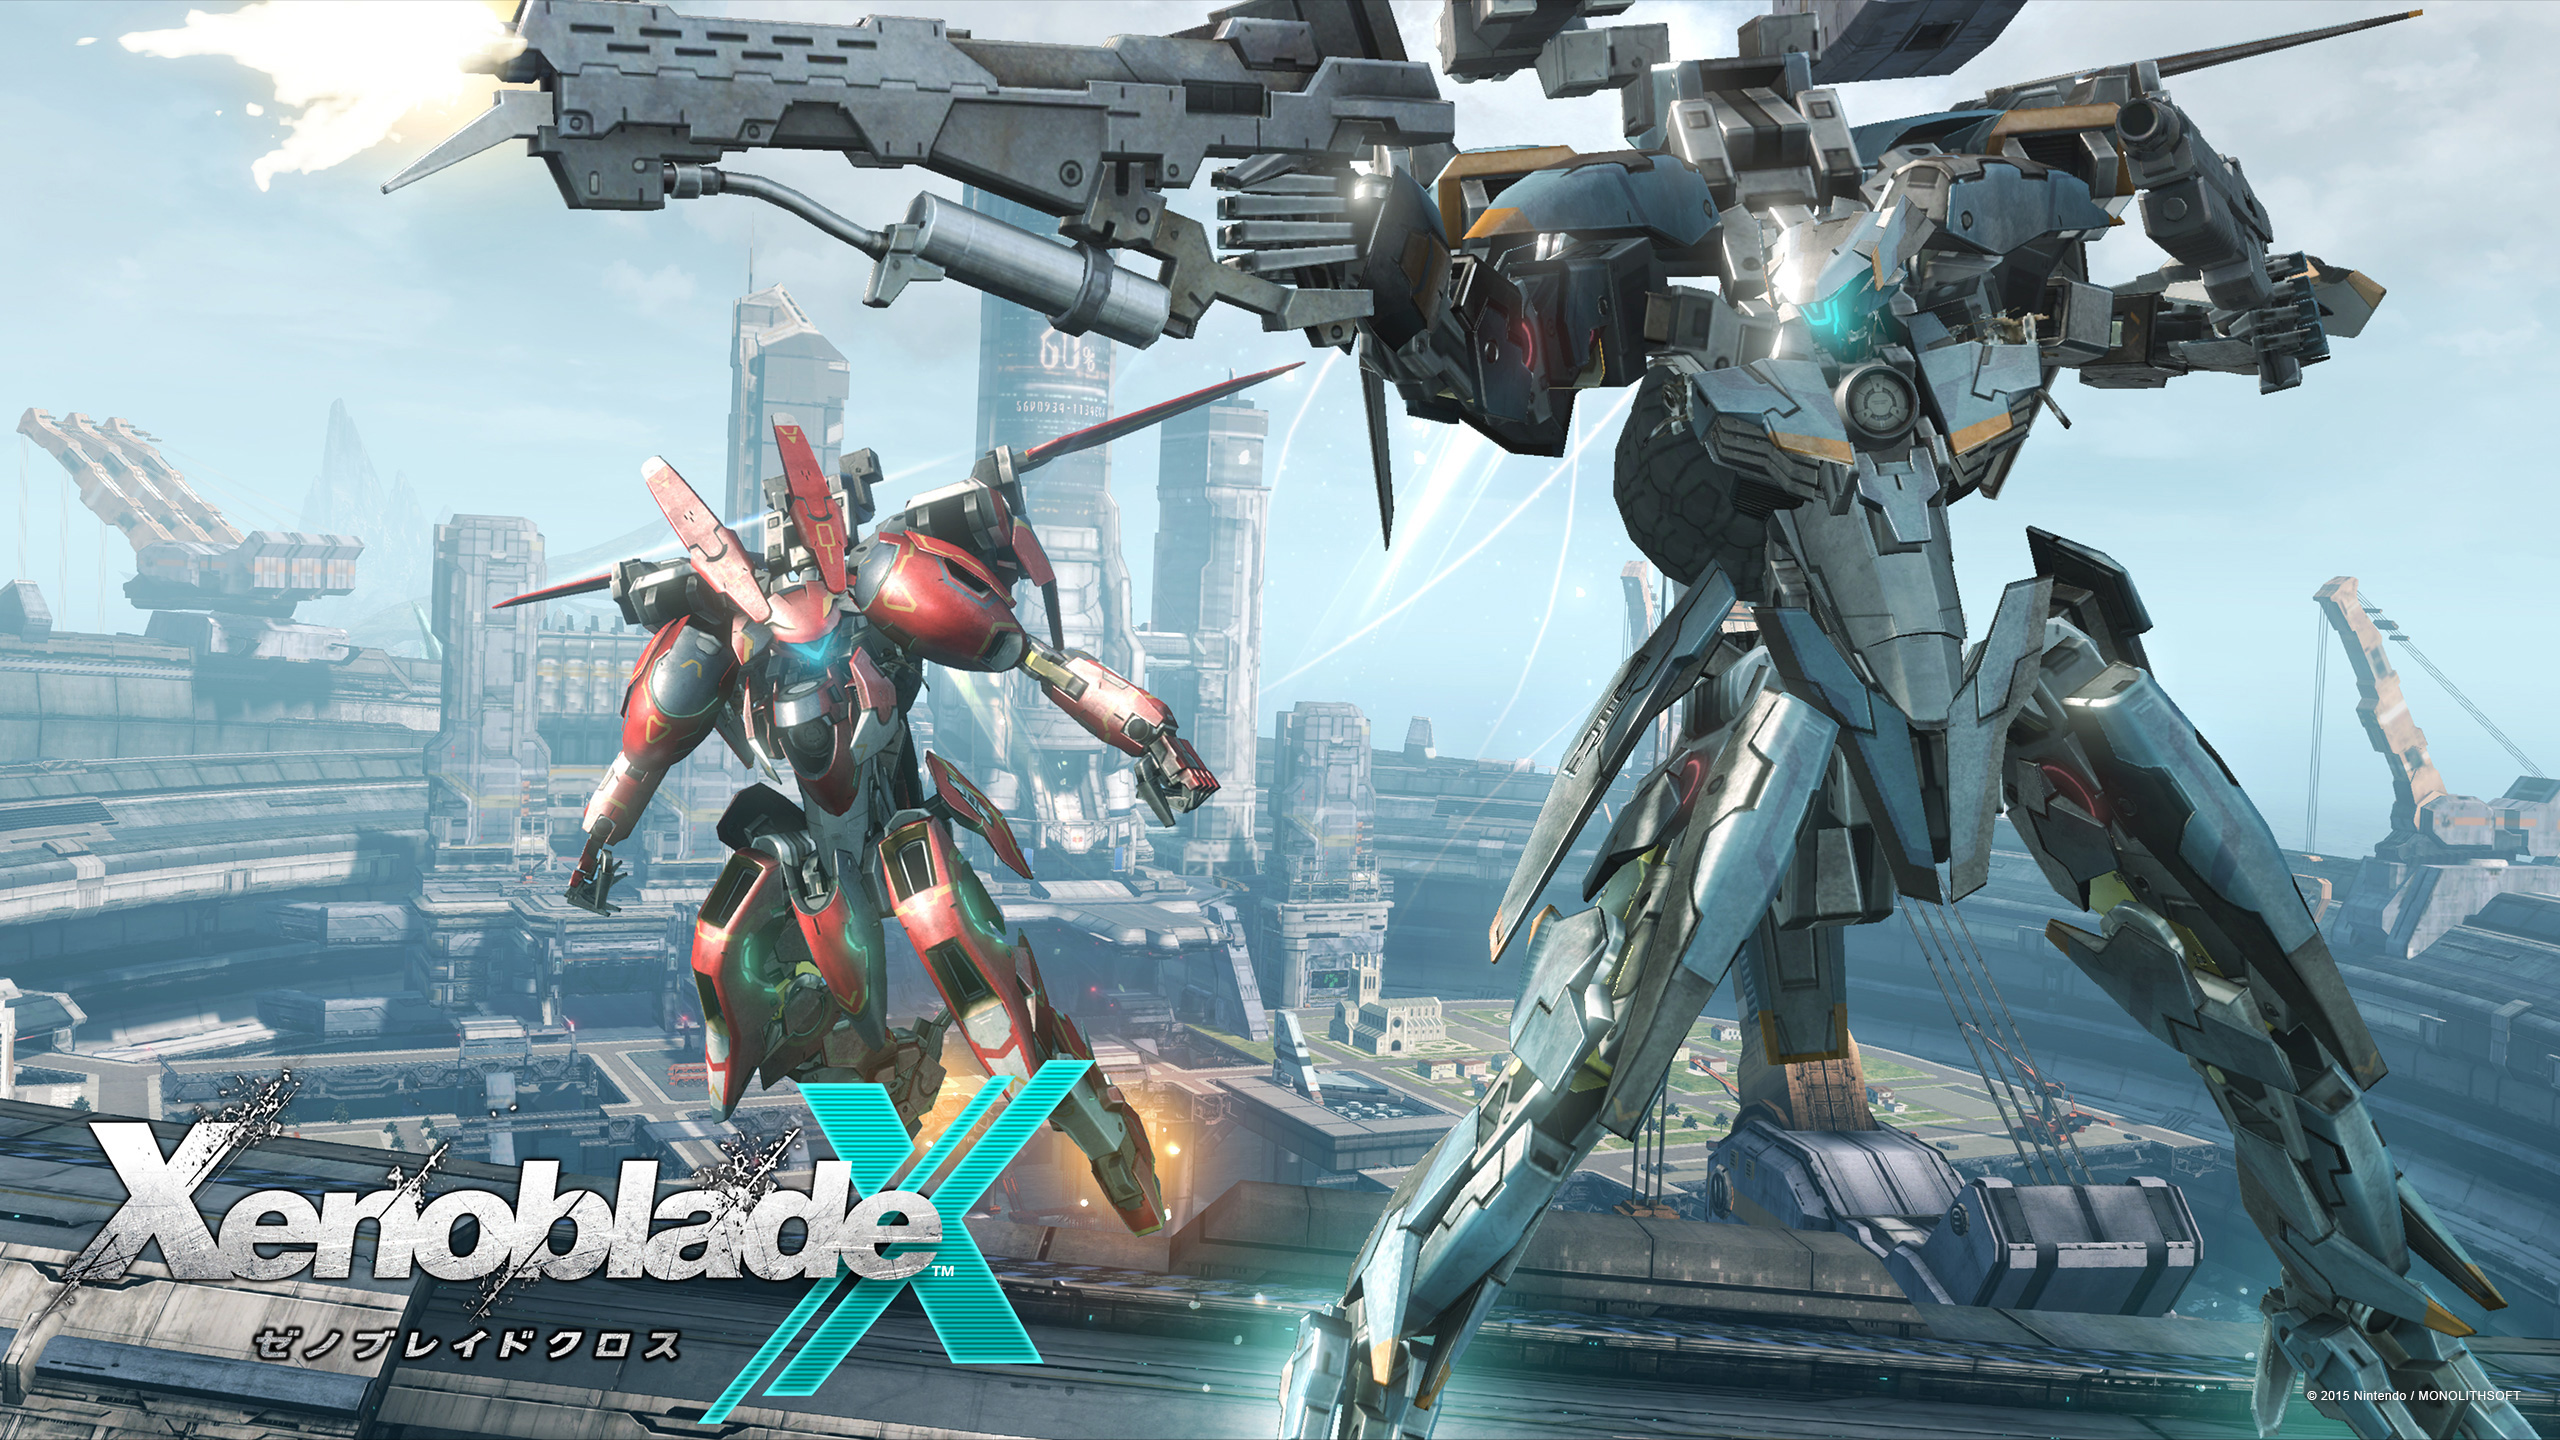 Xenoblade Chronicles X Hd Wallpaper Background Image 2560x1440